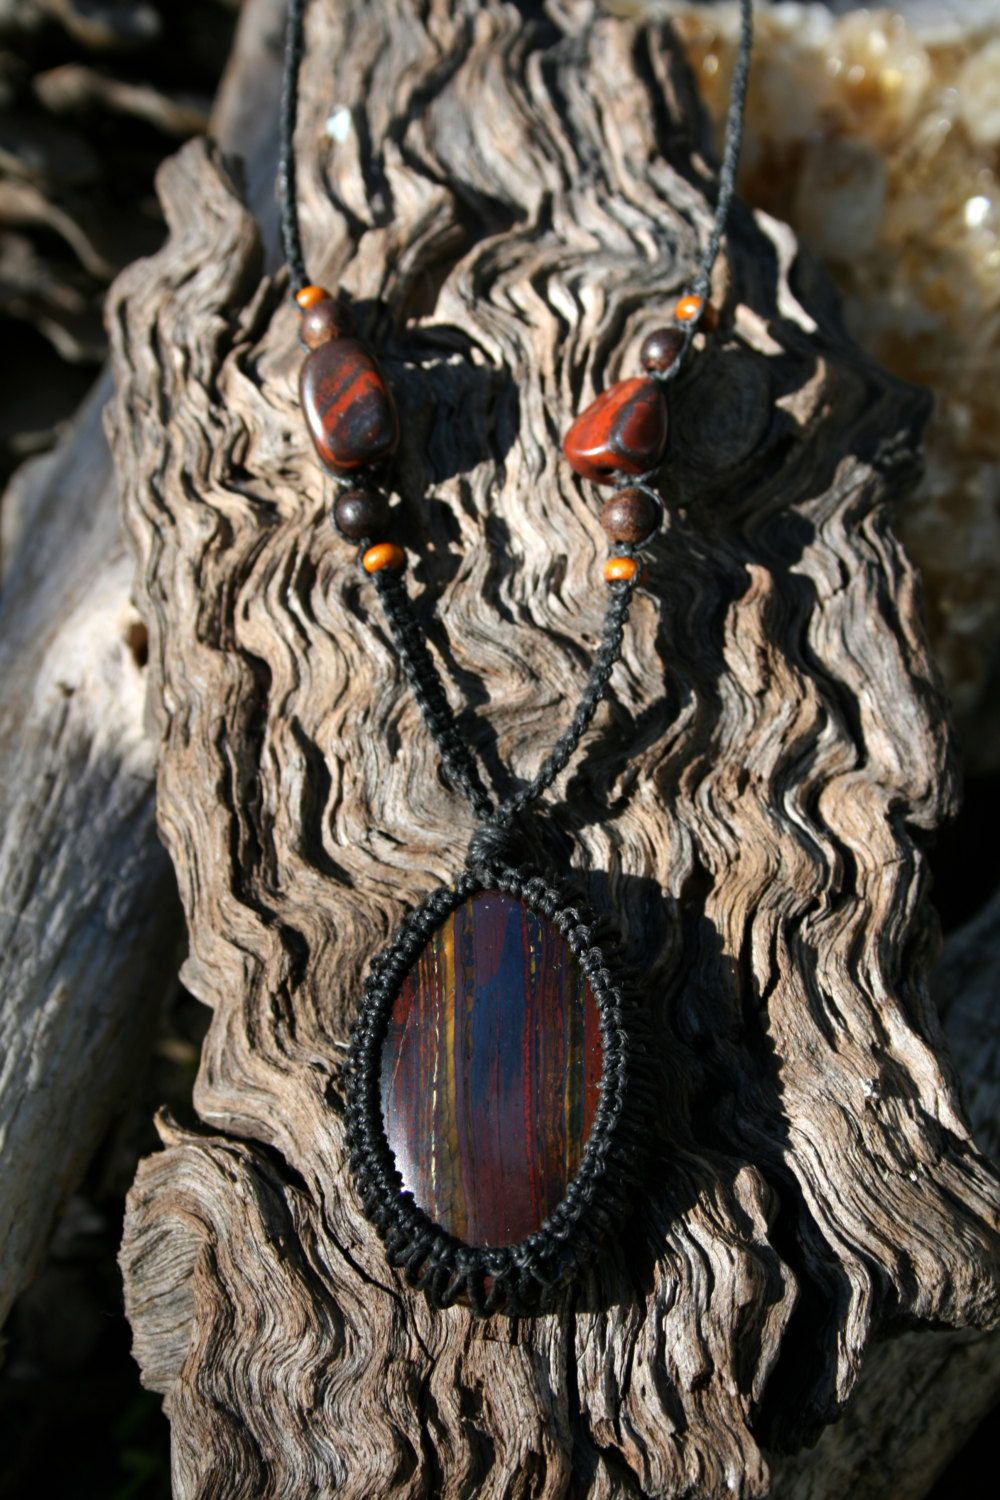 Red Iron Tigers Eye Macrame Pendant Necklace with Iron Tigers Eye & Wooden Beads by NaturallyEnigma on Etsy